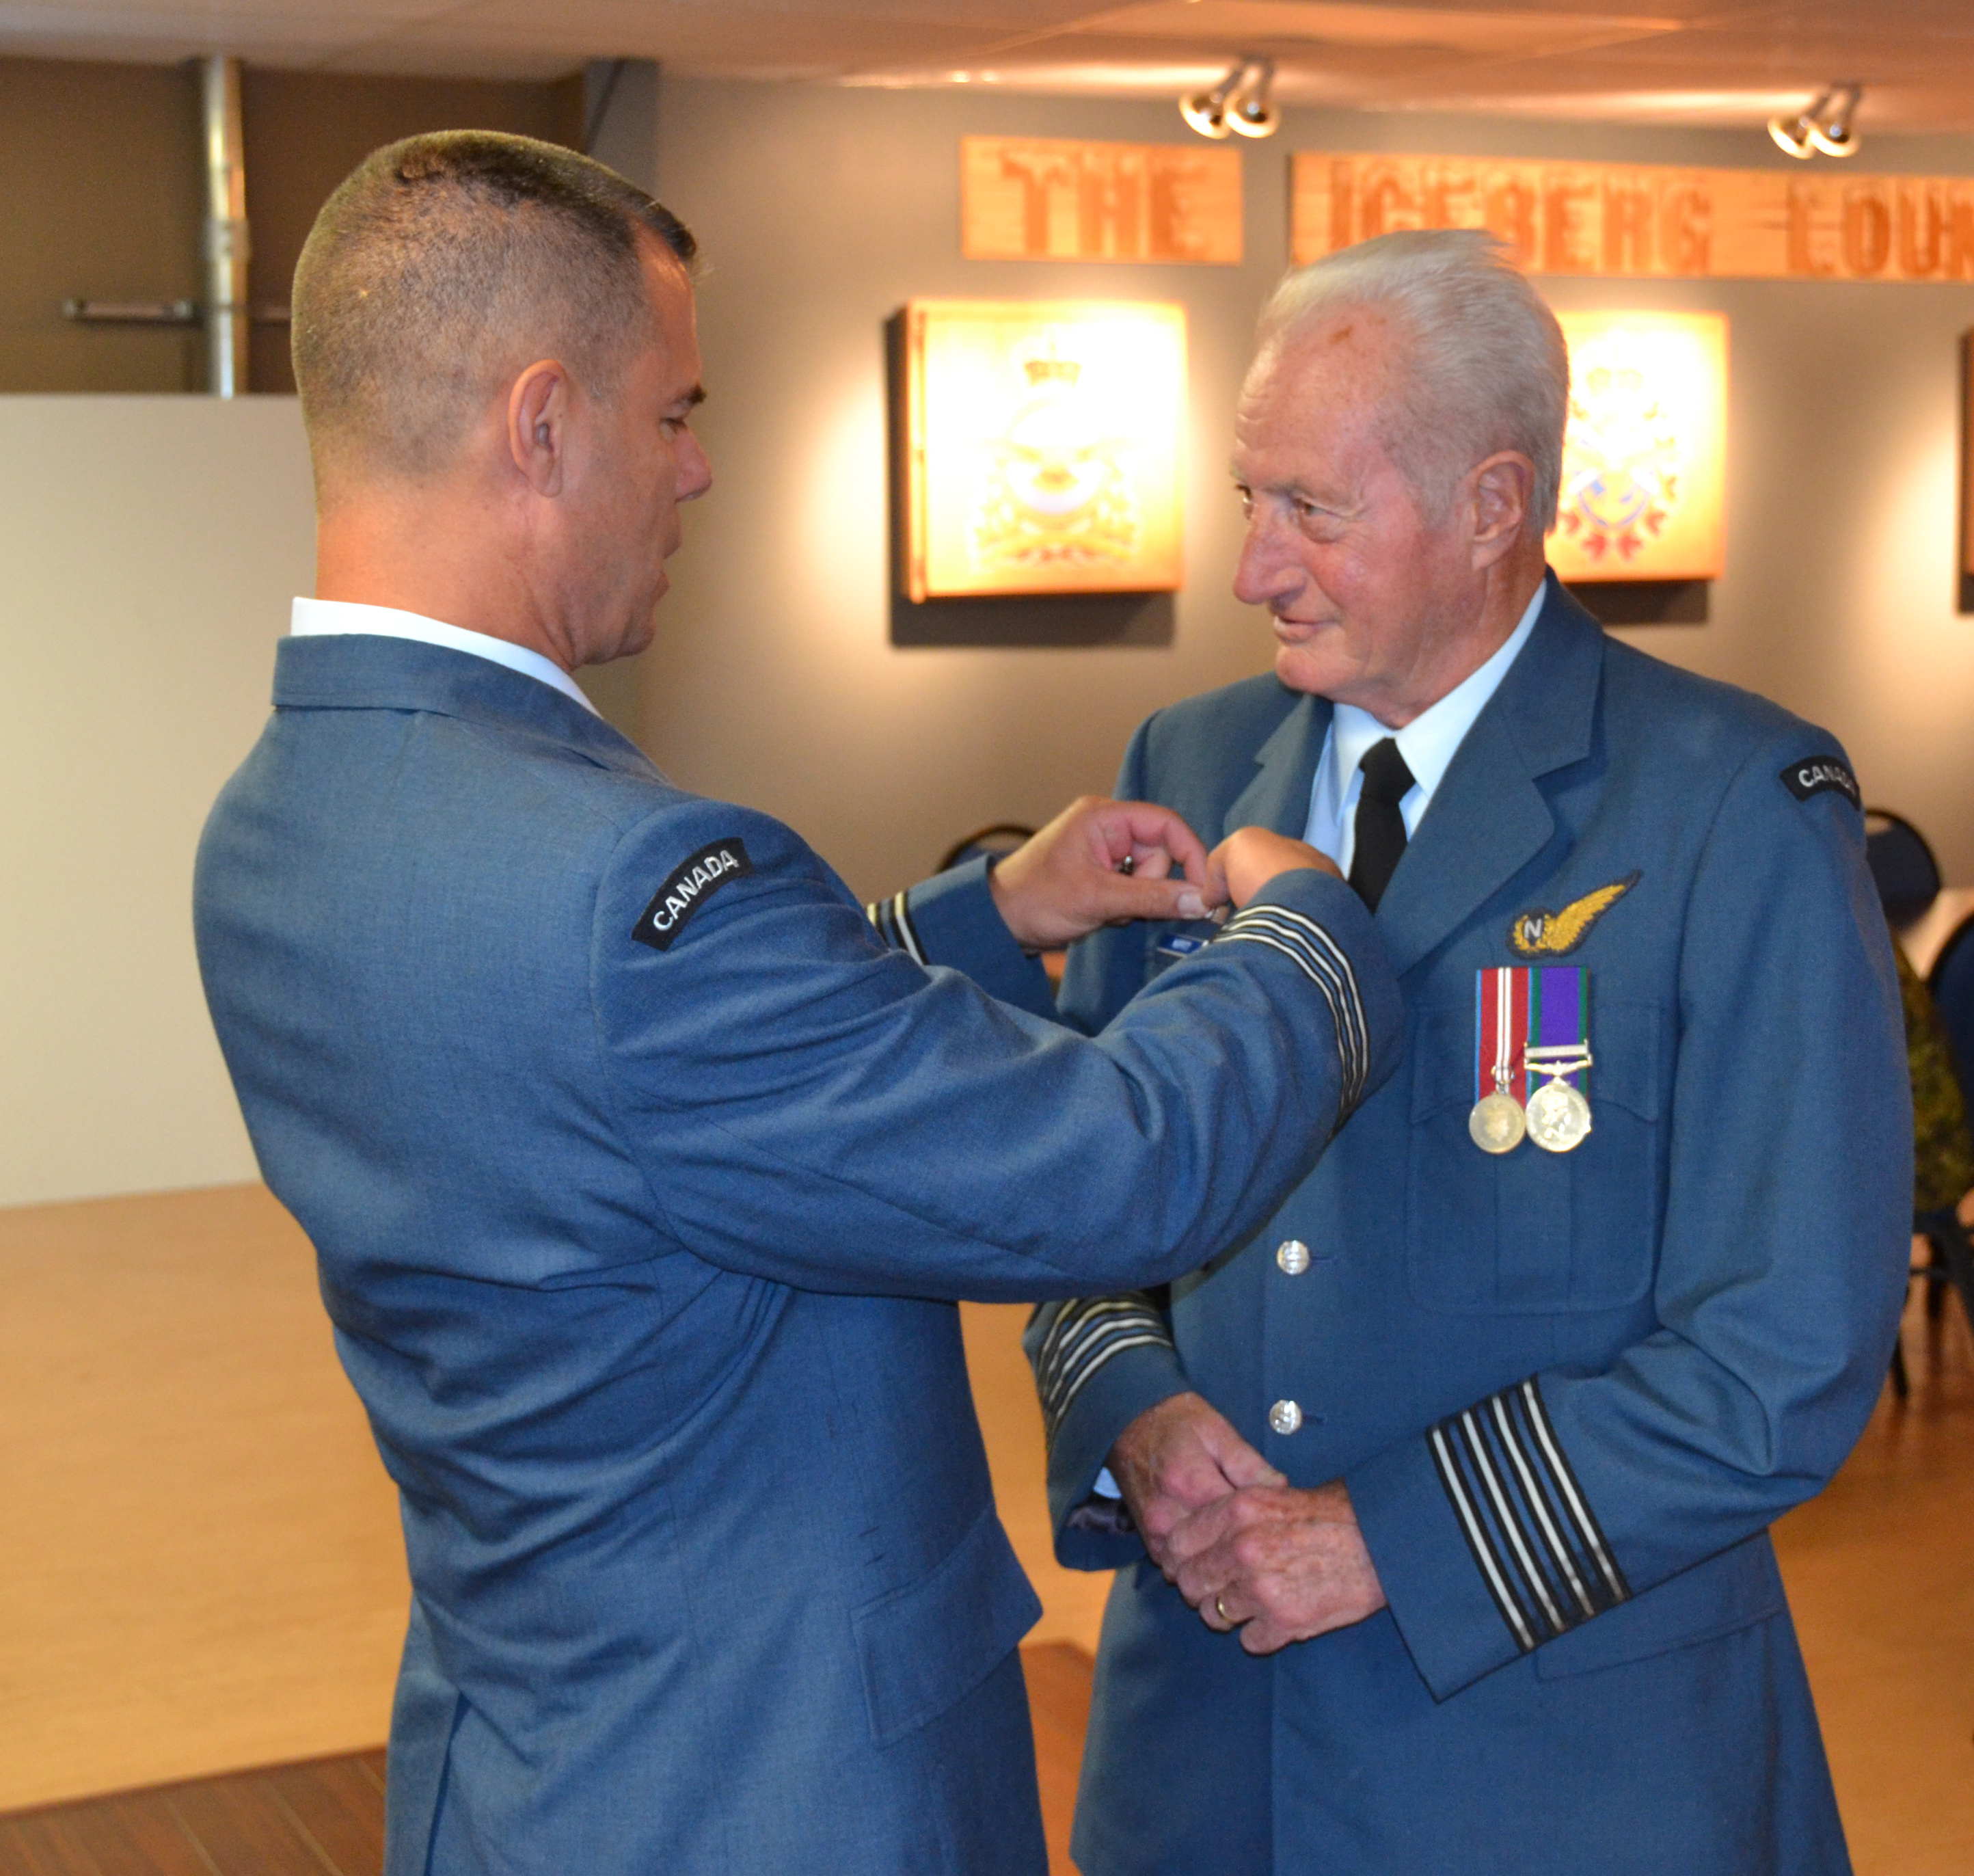 Lieutenant-Colonel Pierre Haché, commander of 9 Wing Gander, Newfoundland and Labrador, pins honorary colonel wings on Honorary Colonel Fred Moffitt's tunic. Honorary Colonel Moffitt served as honorary colonel of the wing from December 2014 until his death on January 17, 2017. PHOTO: Submitted